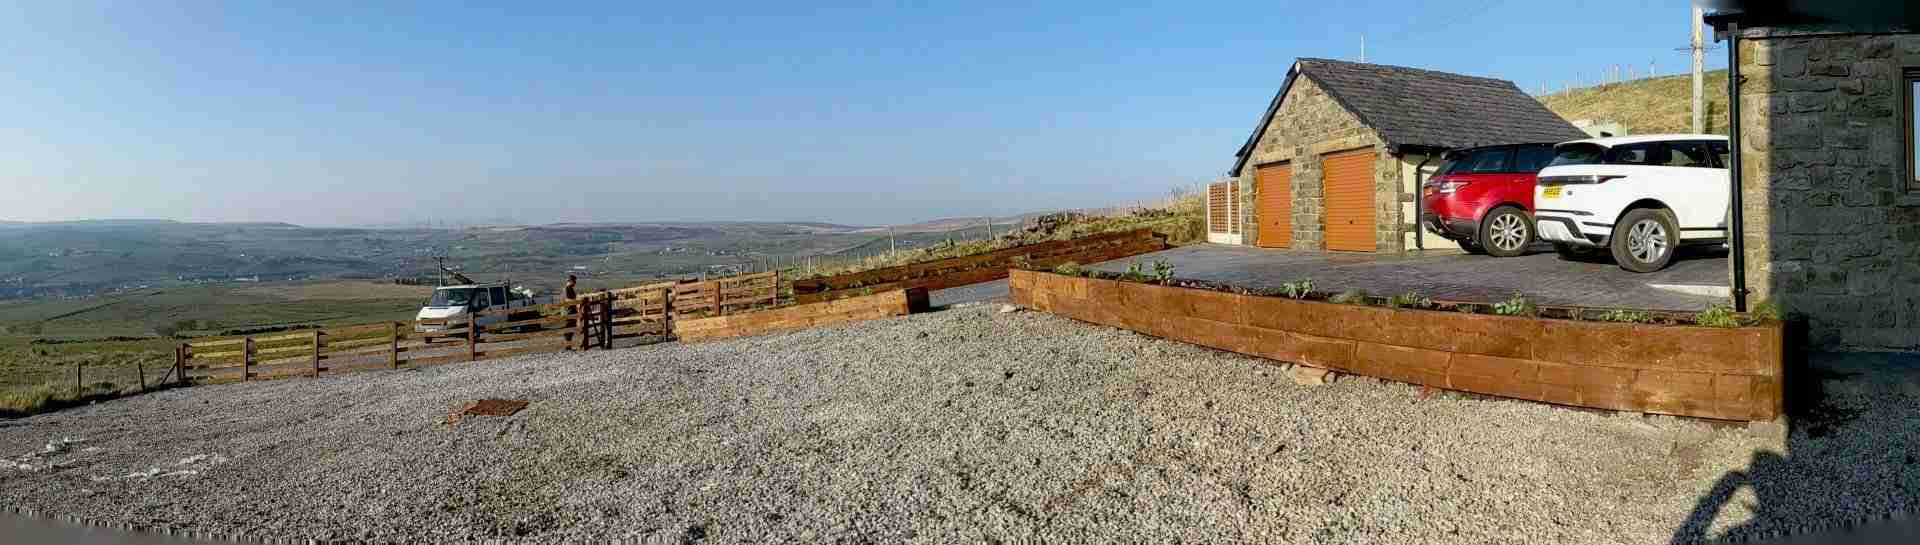 Landscaping work on converted farm. Showing new garden features including raised wooden planters and new fencing